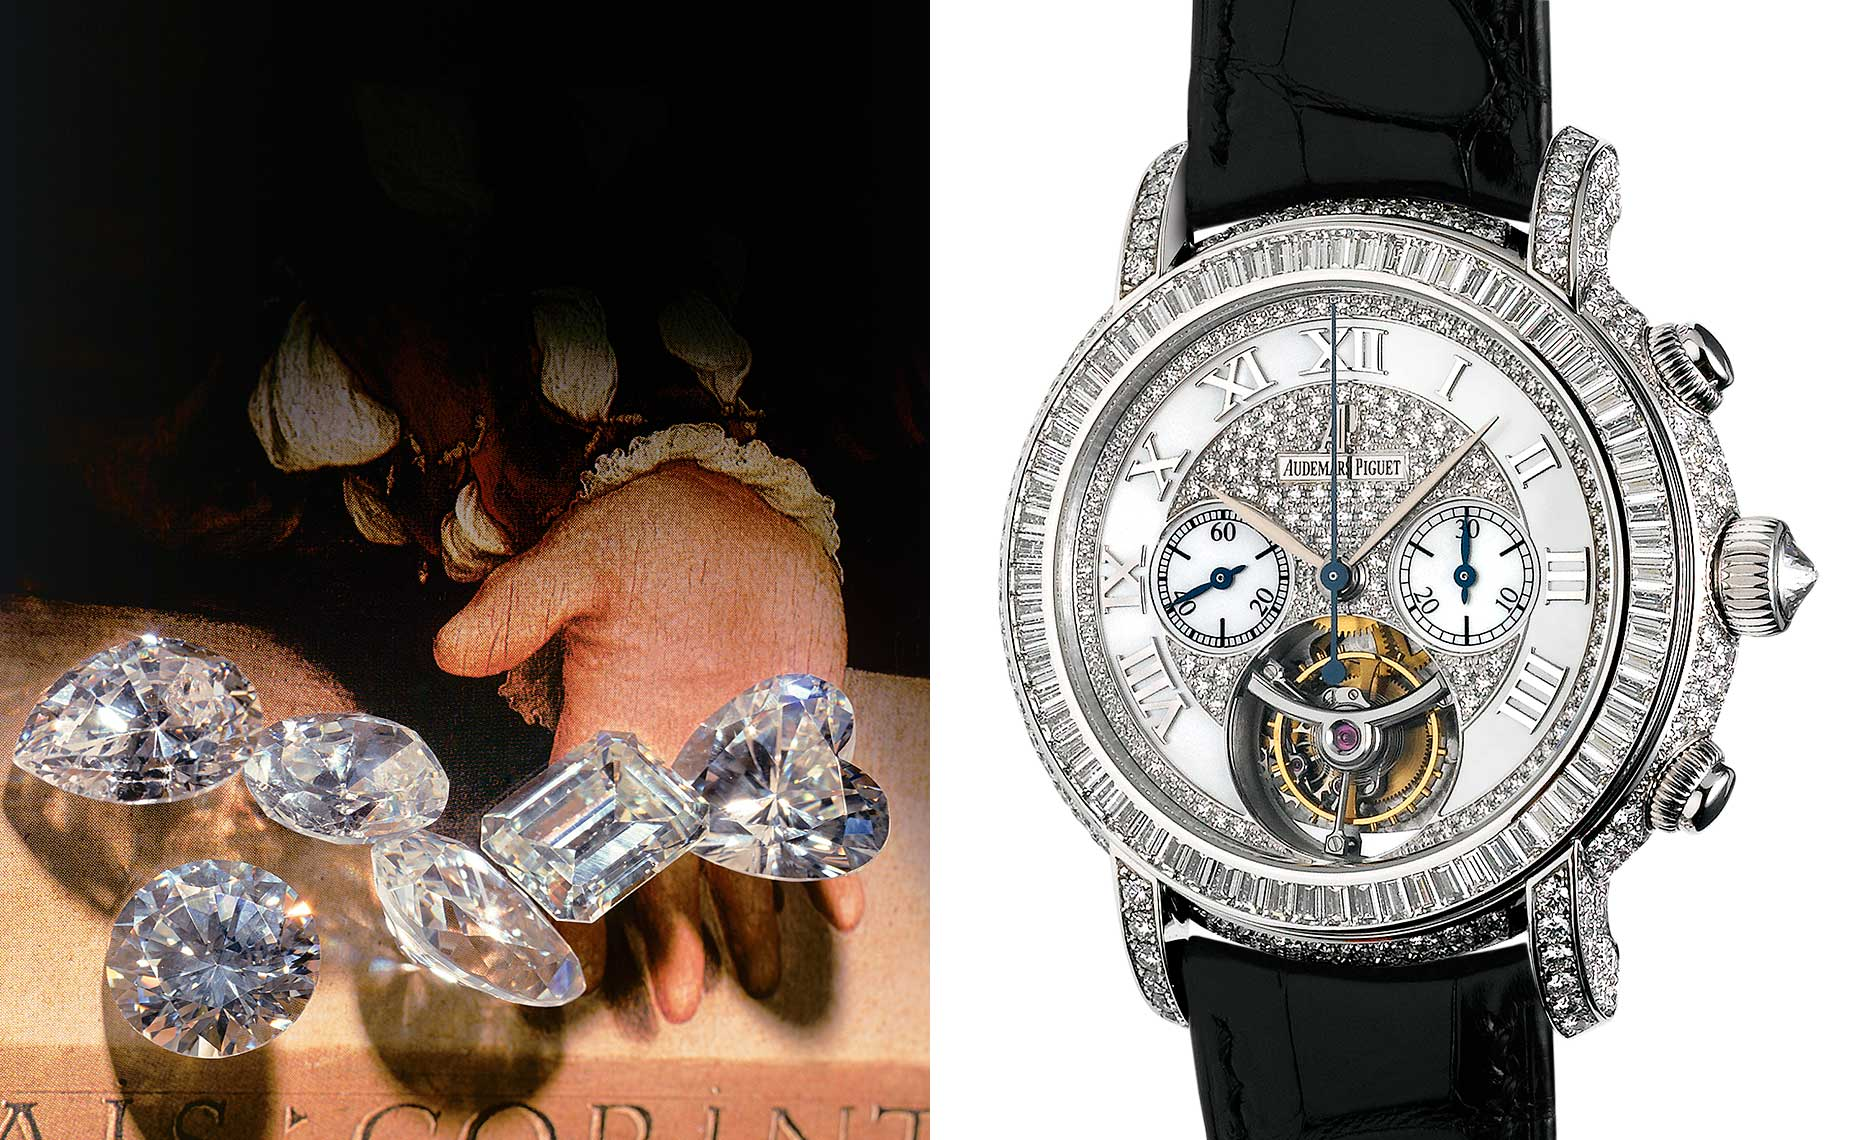 Counterfeit diamonds and Audemars Piguet wristwatch